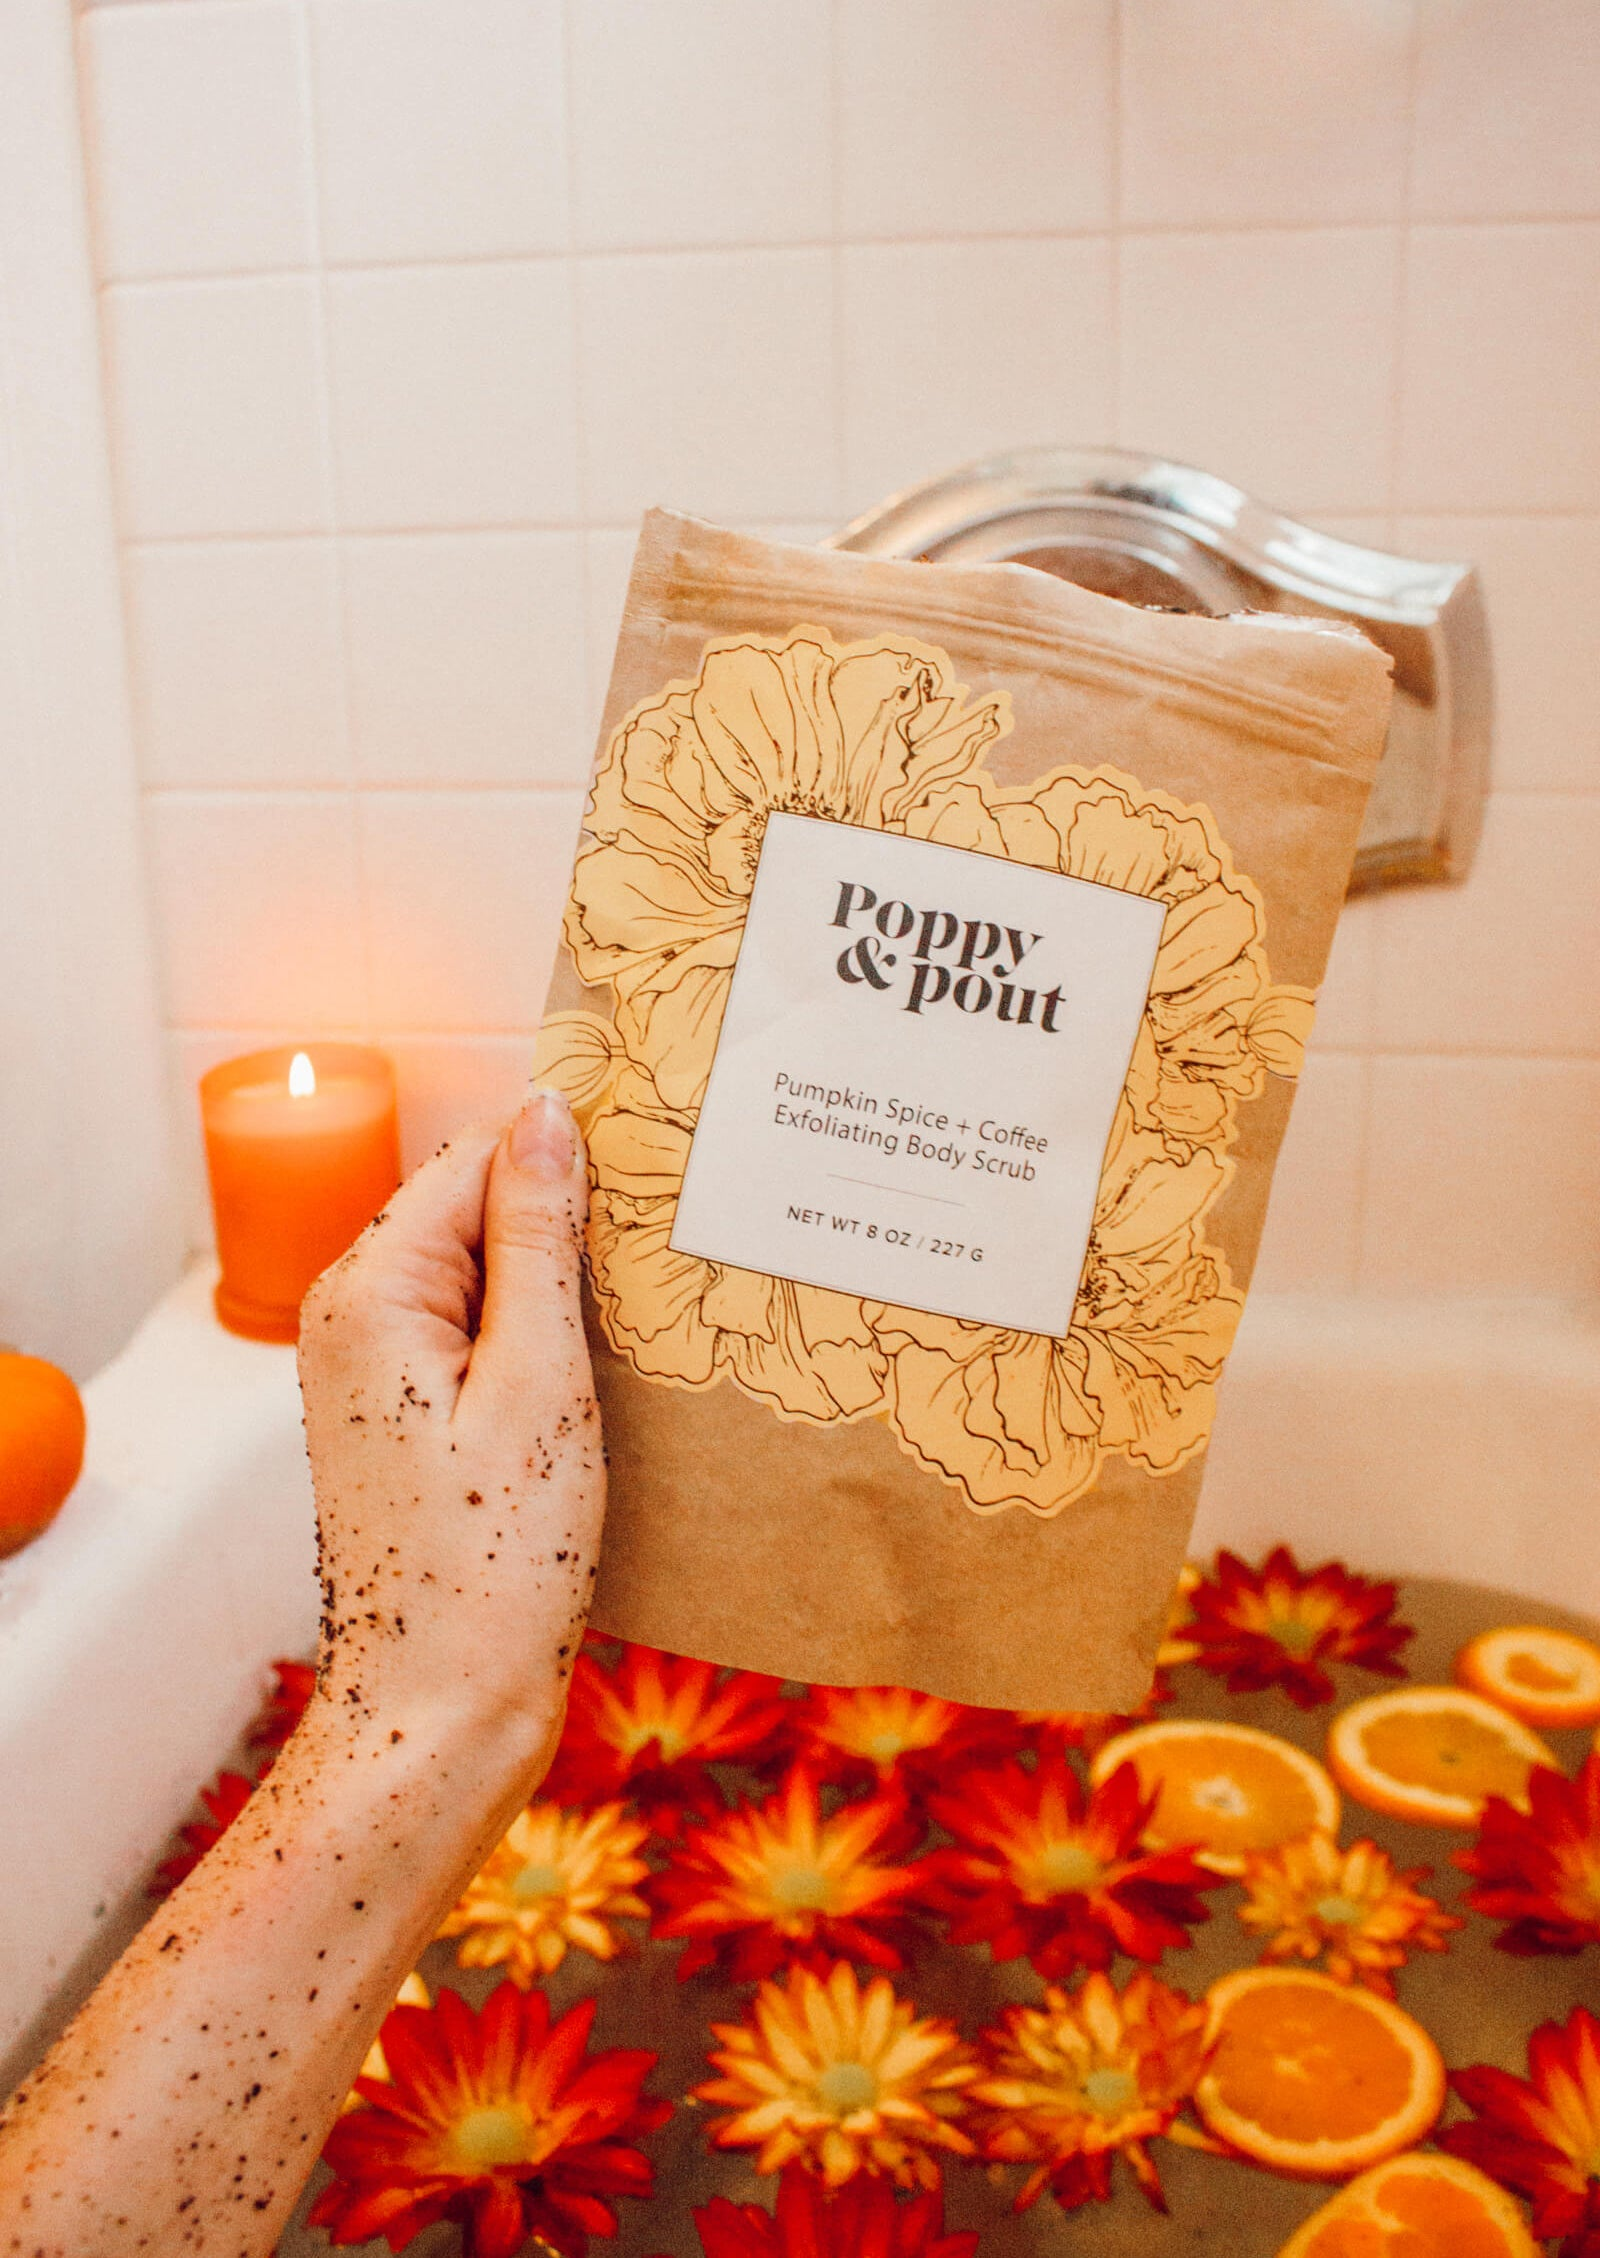 Pumpkin Spice + Coffee Body Scrub